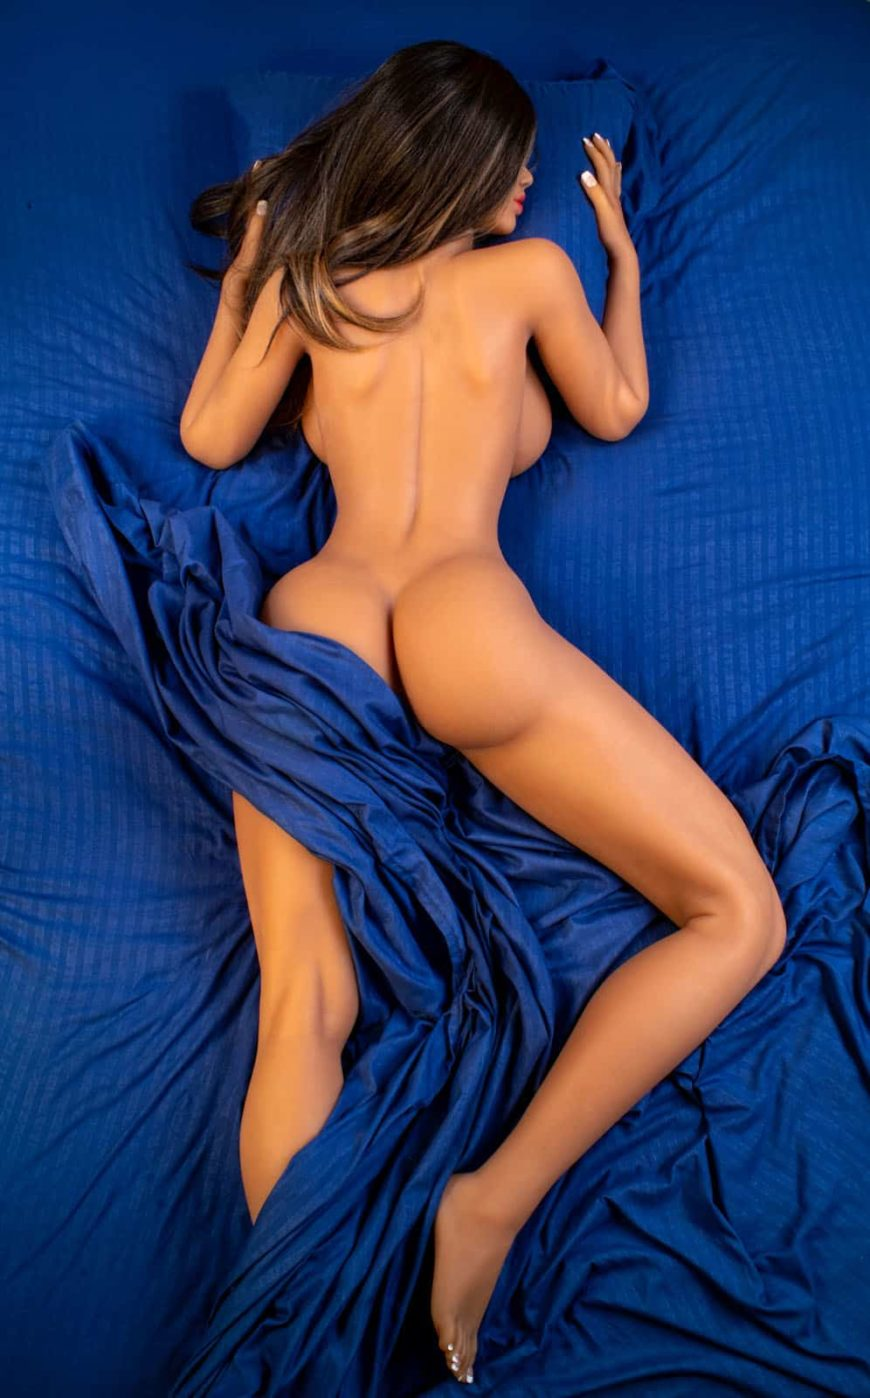 Catie-Sex-Doll-posing-nude-on-bed (1)